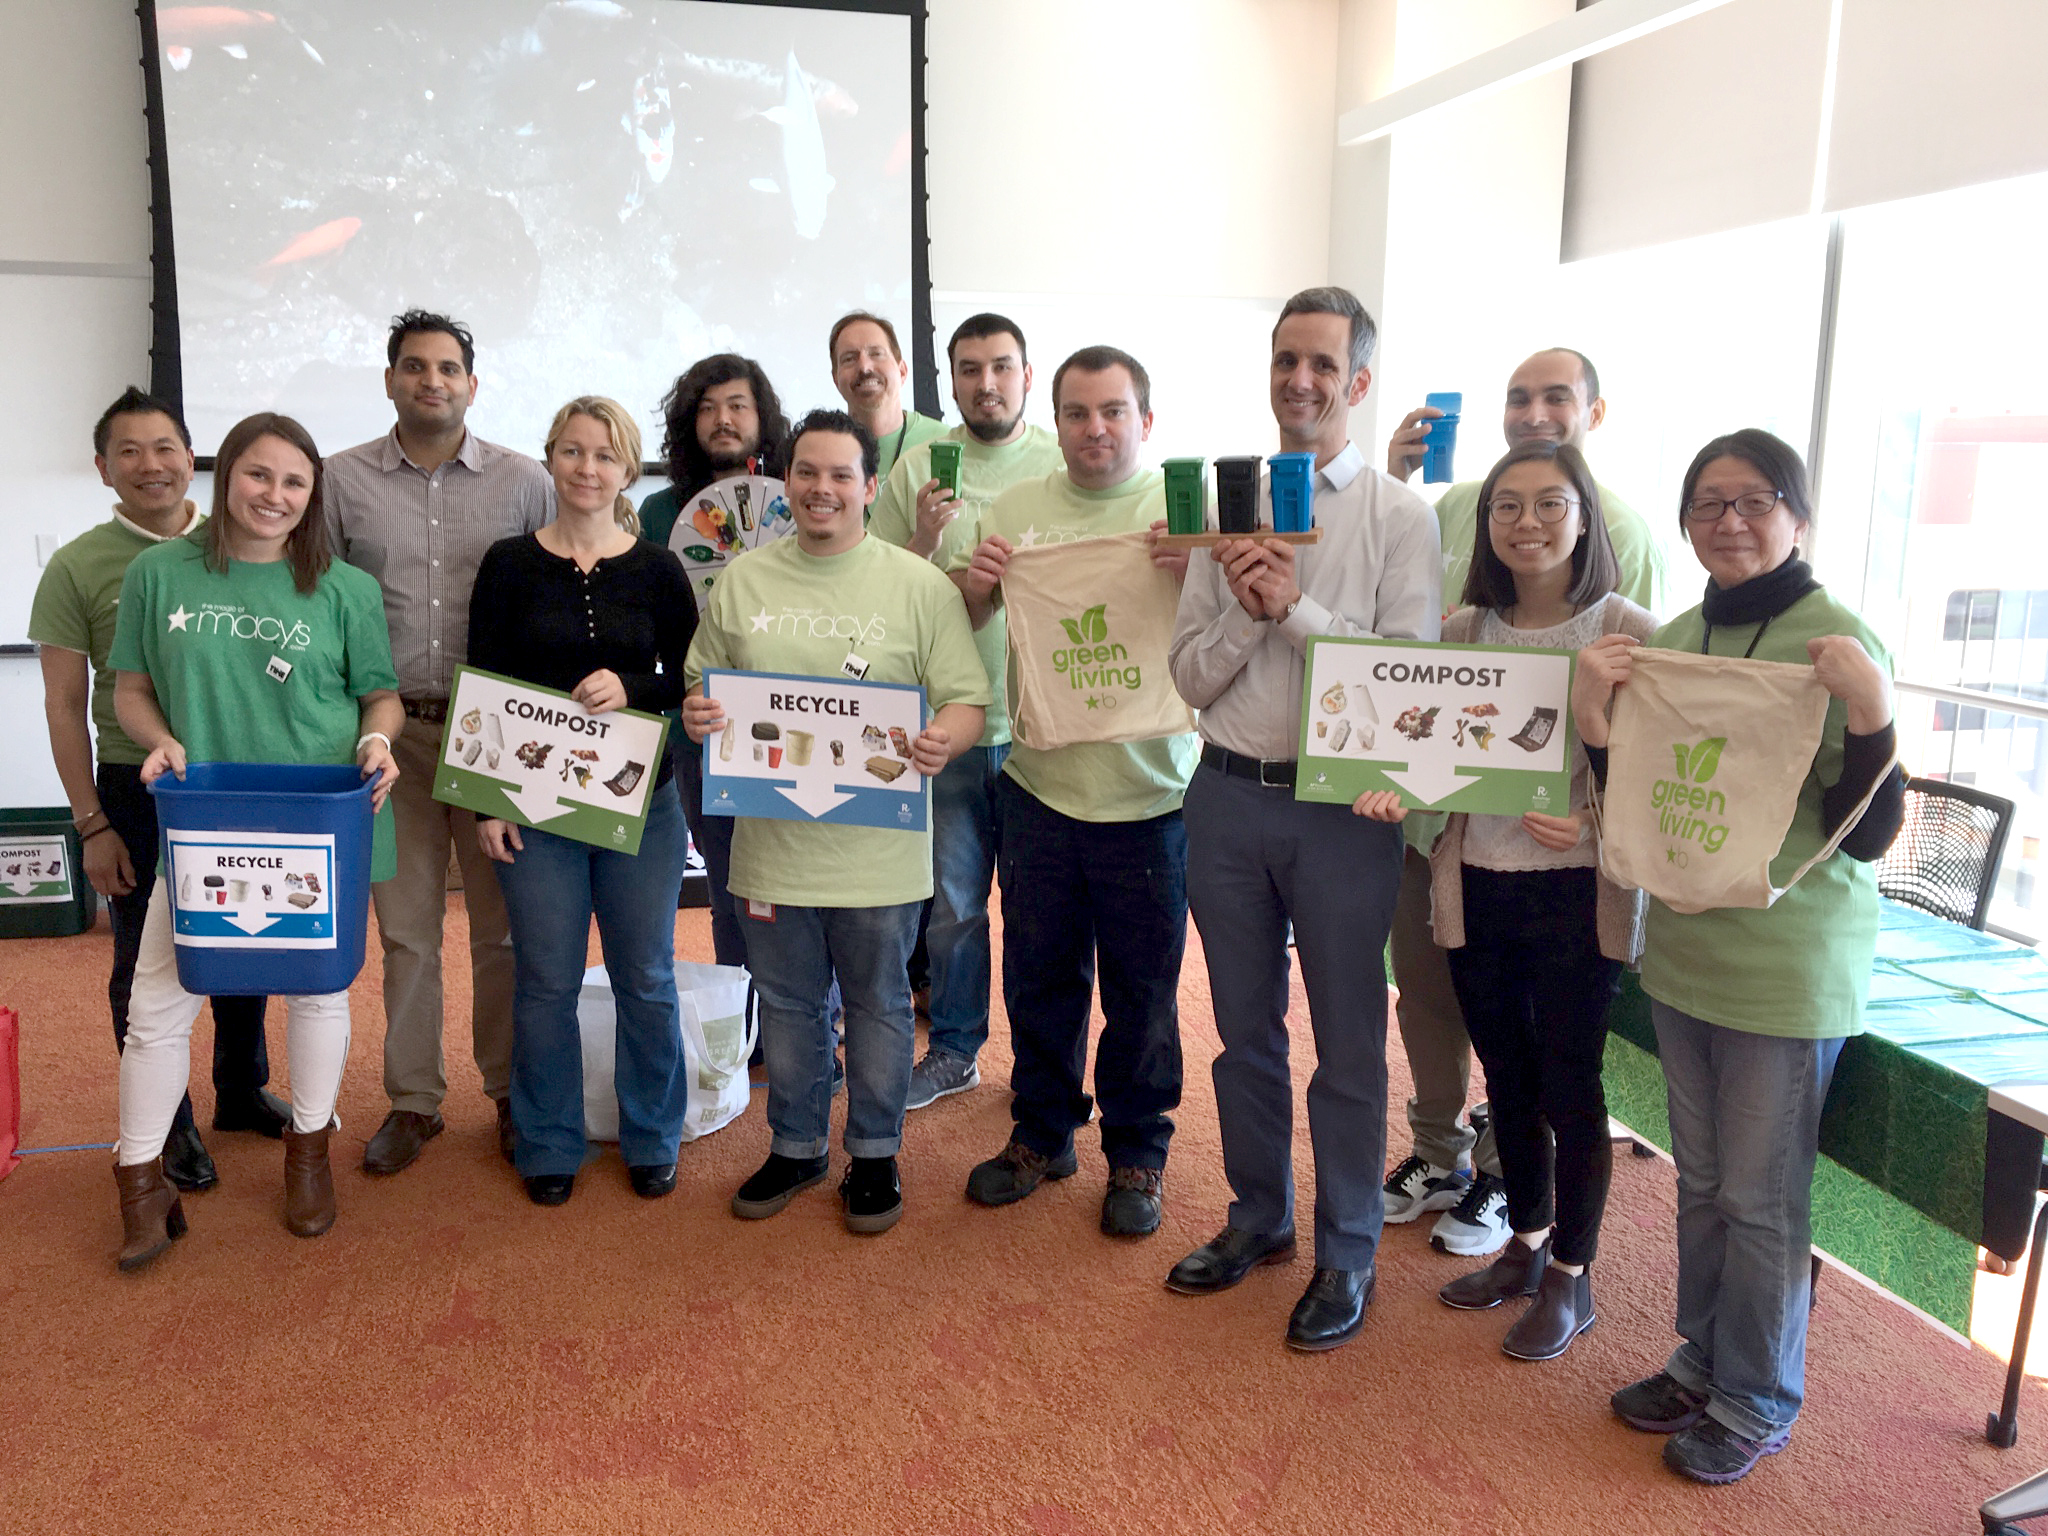 """San Francisco: The new macys.com Go Green Employee Resource Group took root with events such as """"Wheel of Trash,"""" a trash sorting challenge, education on recycling and waste management and a cleanup project in nearby Union Square. (Photo: Business Wire)"""